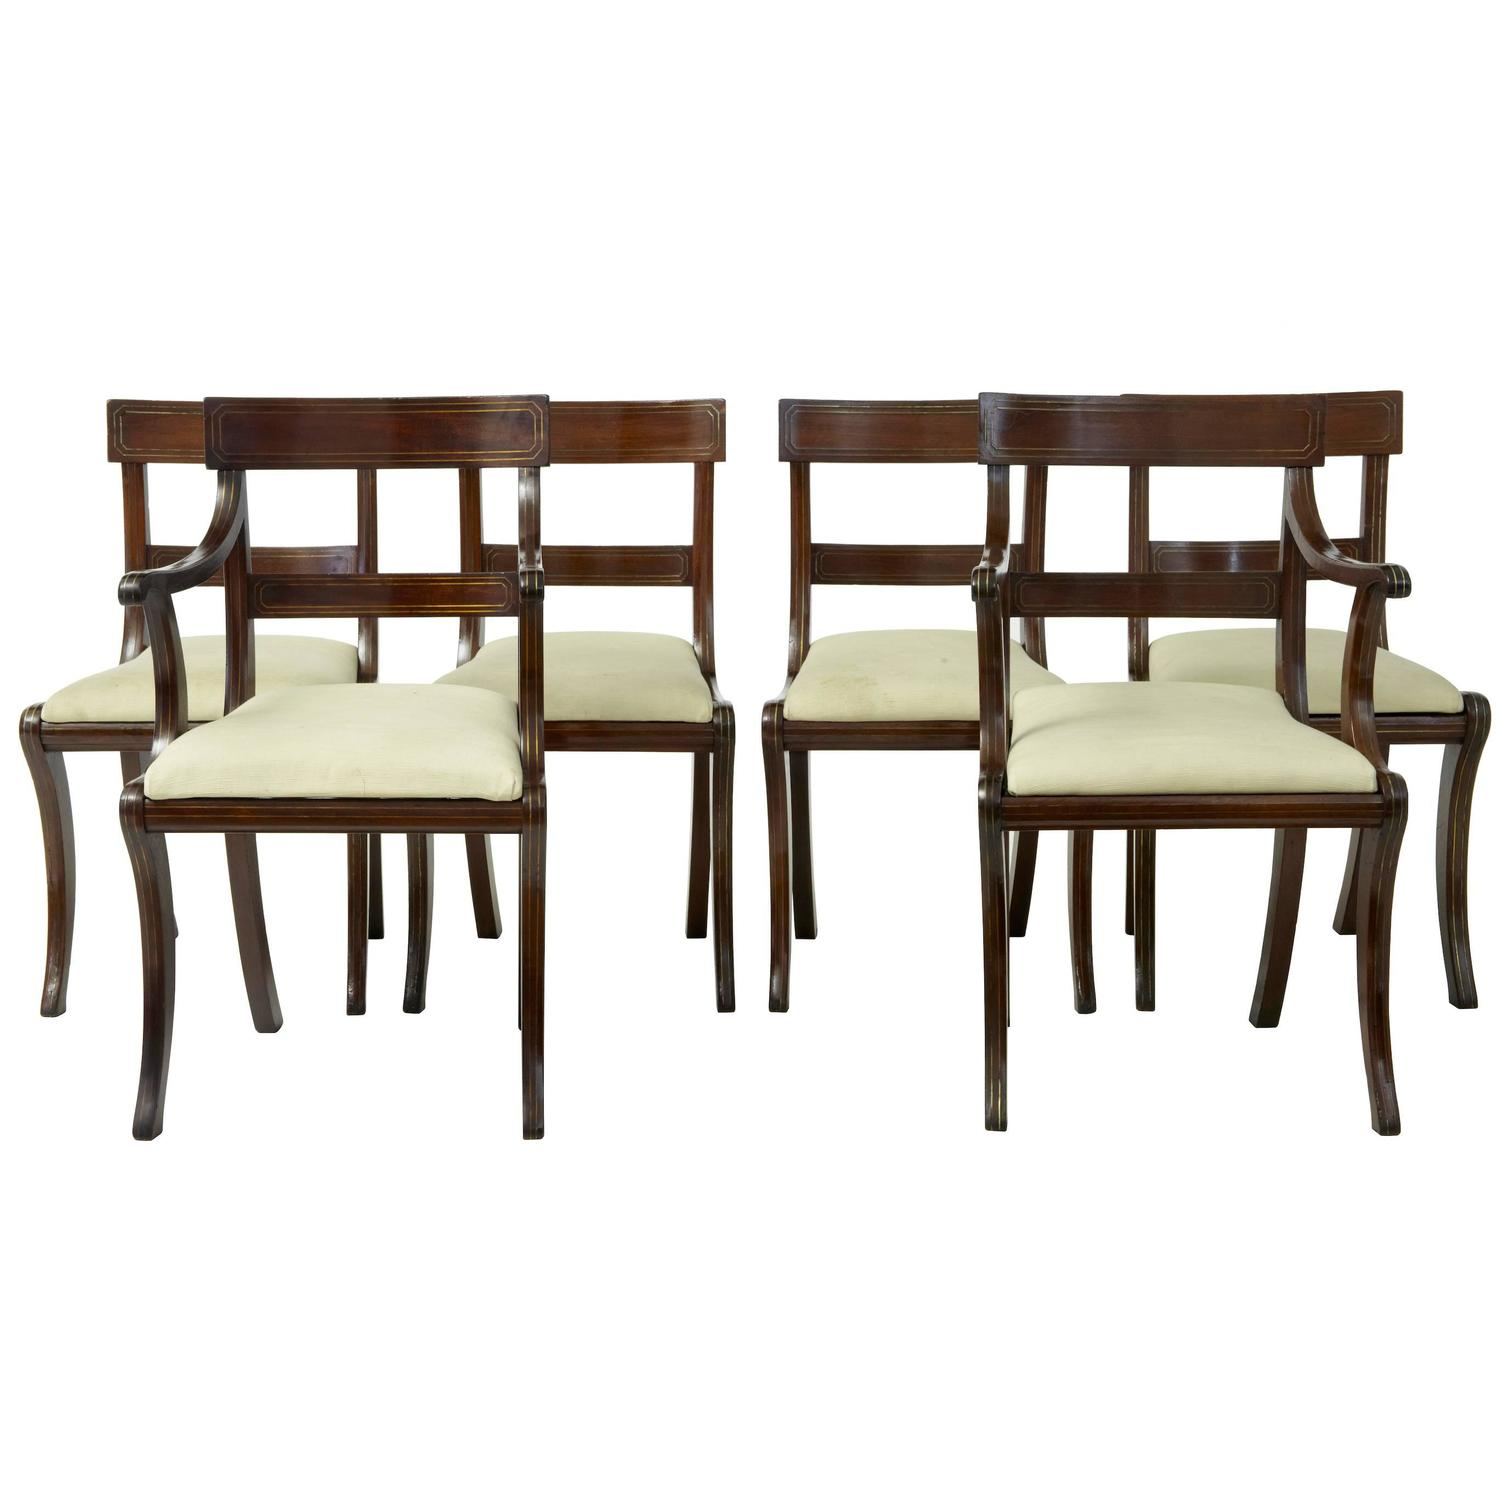 1920s Set Of Six Regency Influenced Mahogany Brass Inlaid Dining Chairs For Sale At 1stdibs